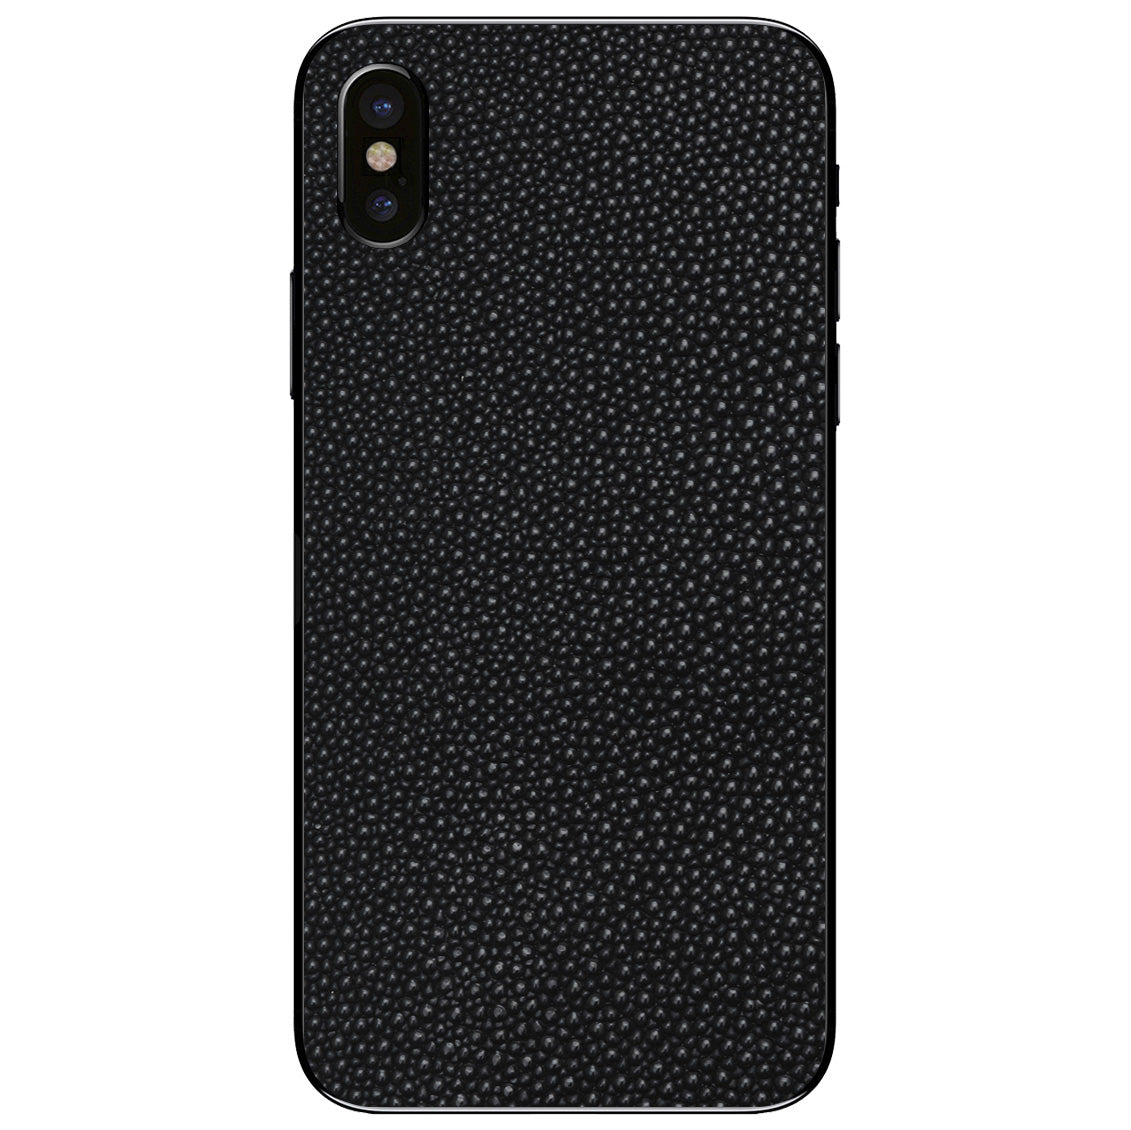 Stingray iPhone X Leather Skin